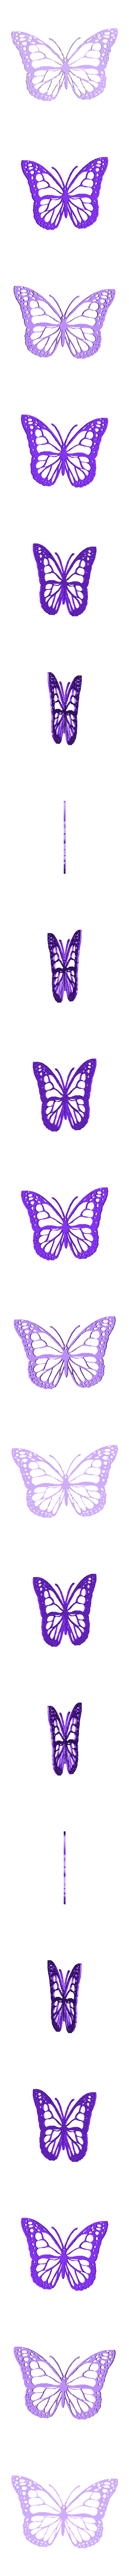 Corps.stl Download free STL file Monarch Butterfly • 3D print design, oasisk